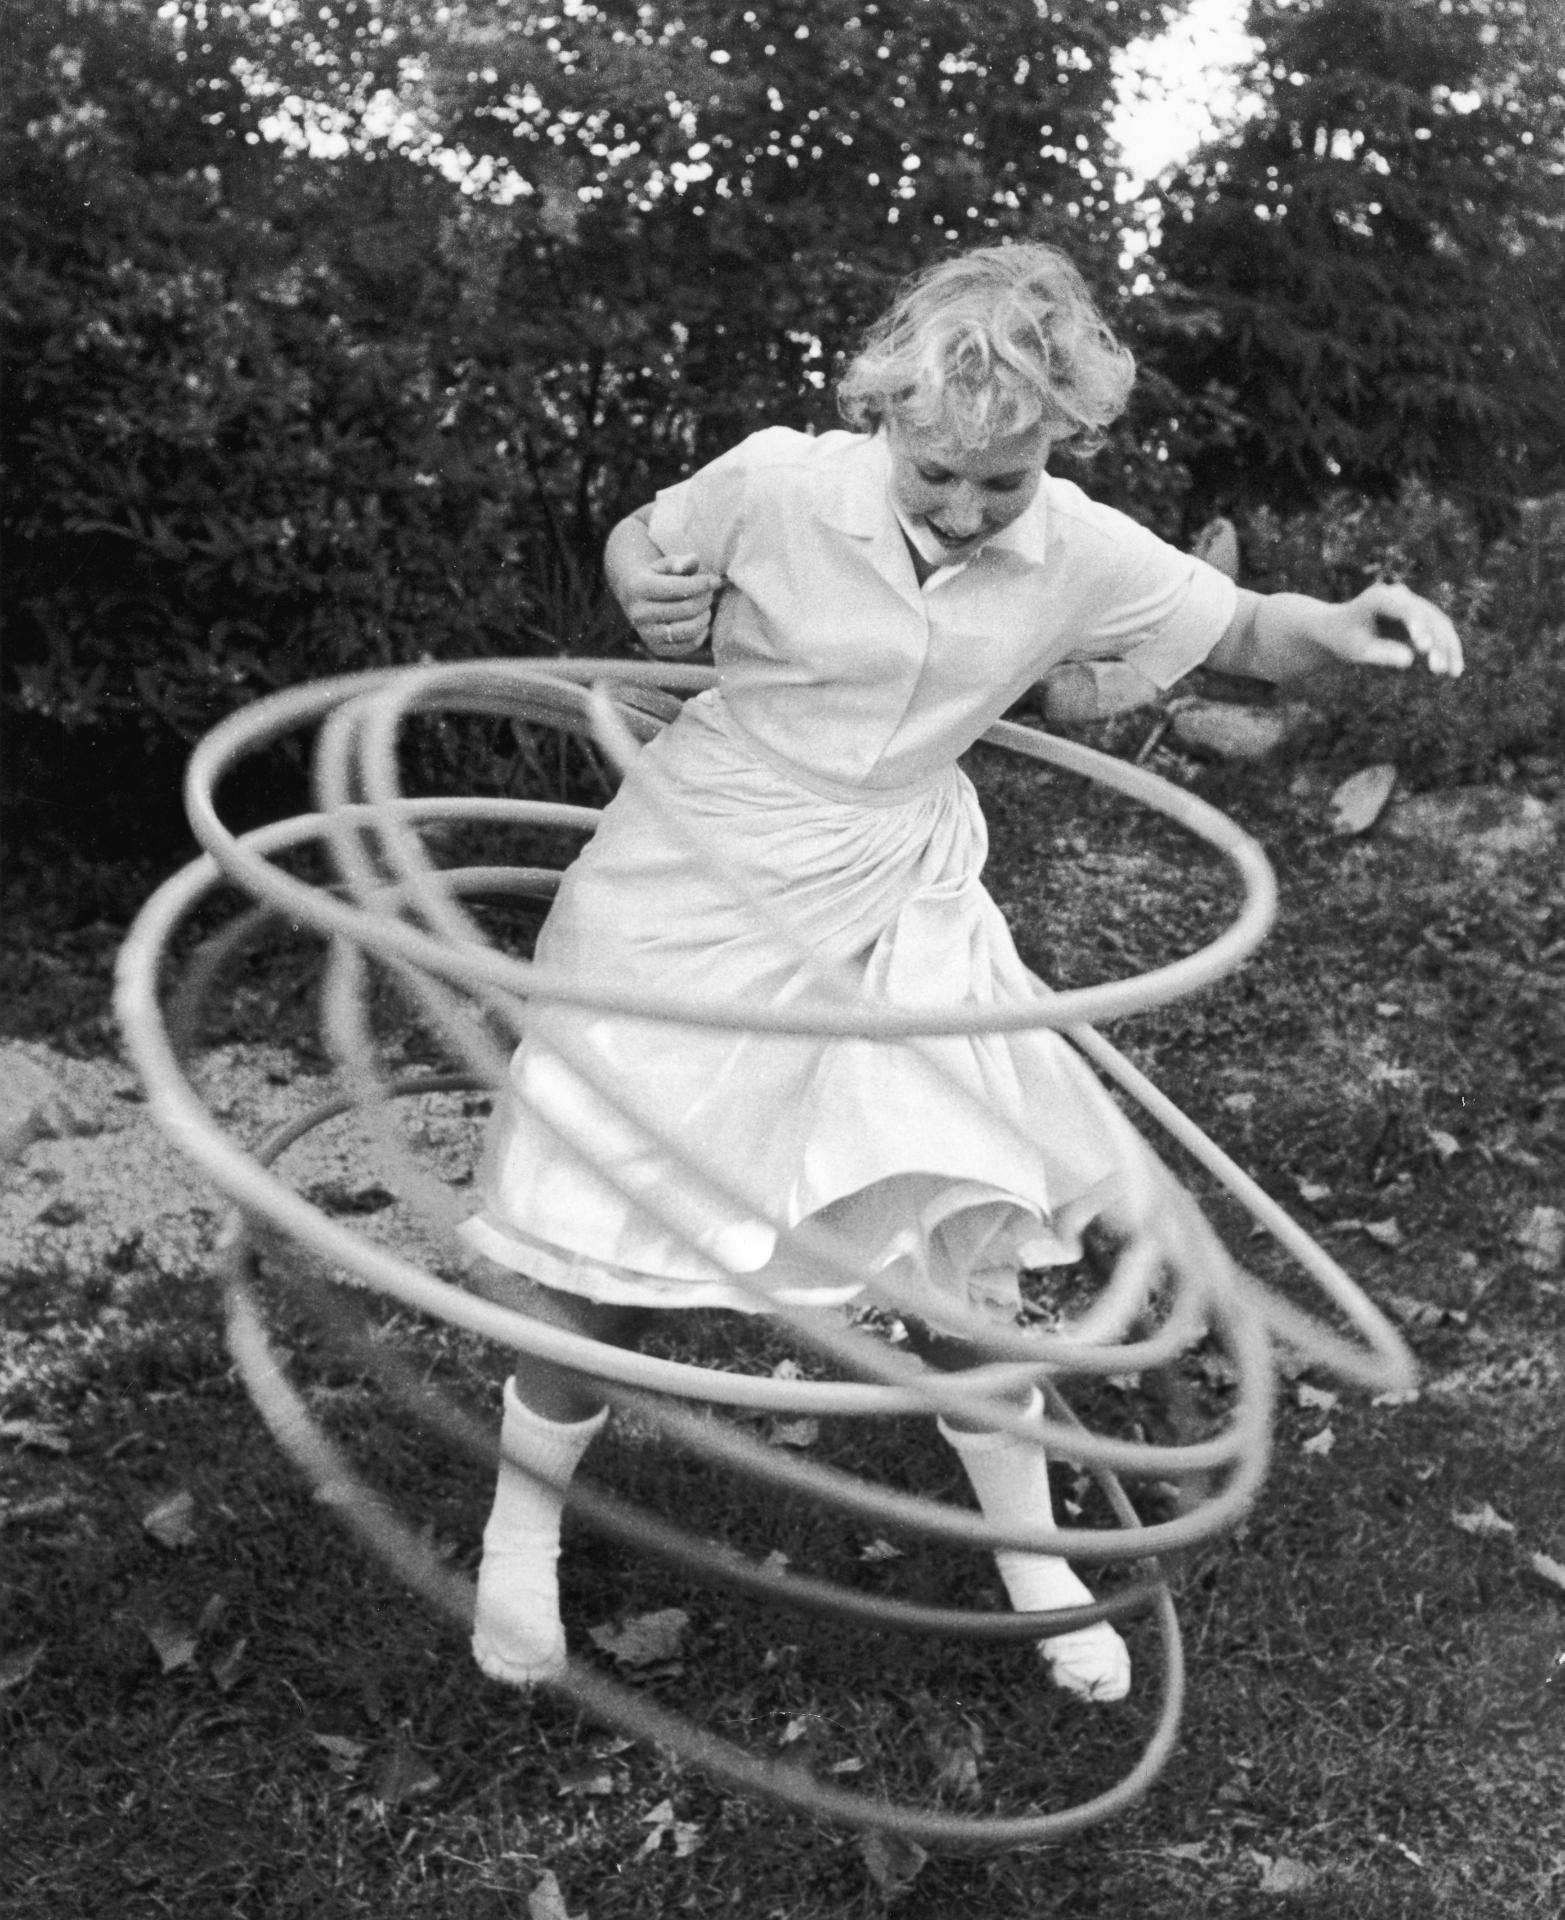 hula hoop, 50s I never could hoola hoop, my sister sure.